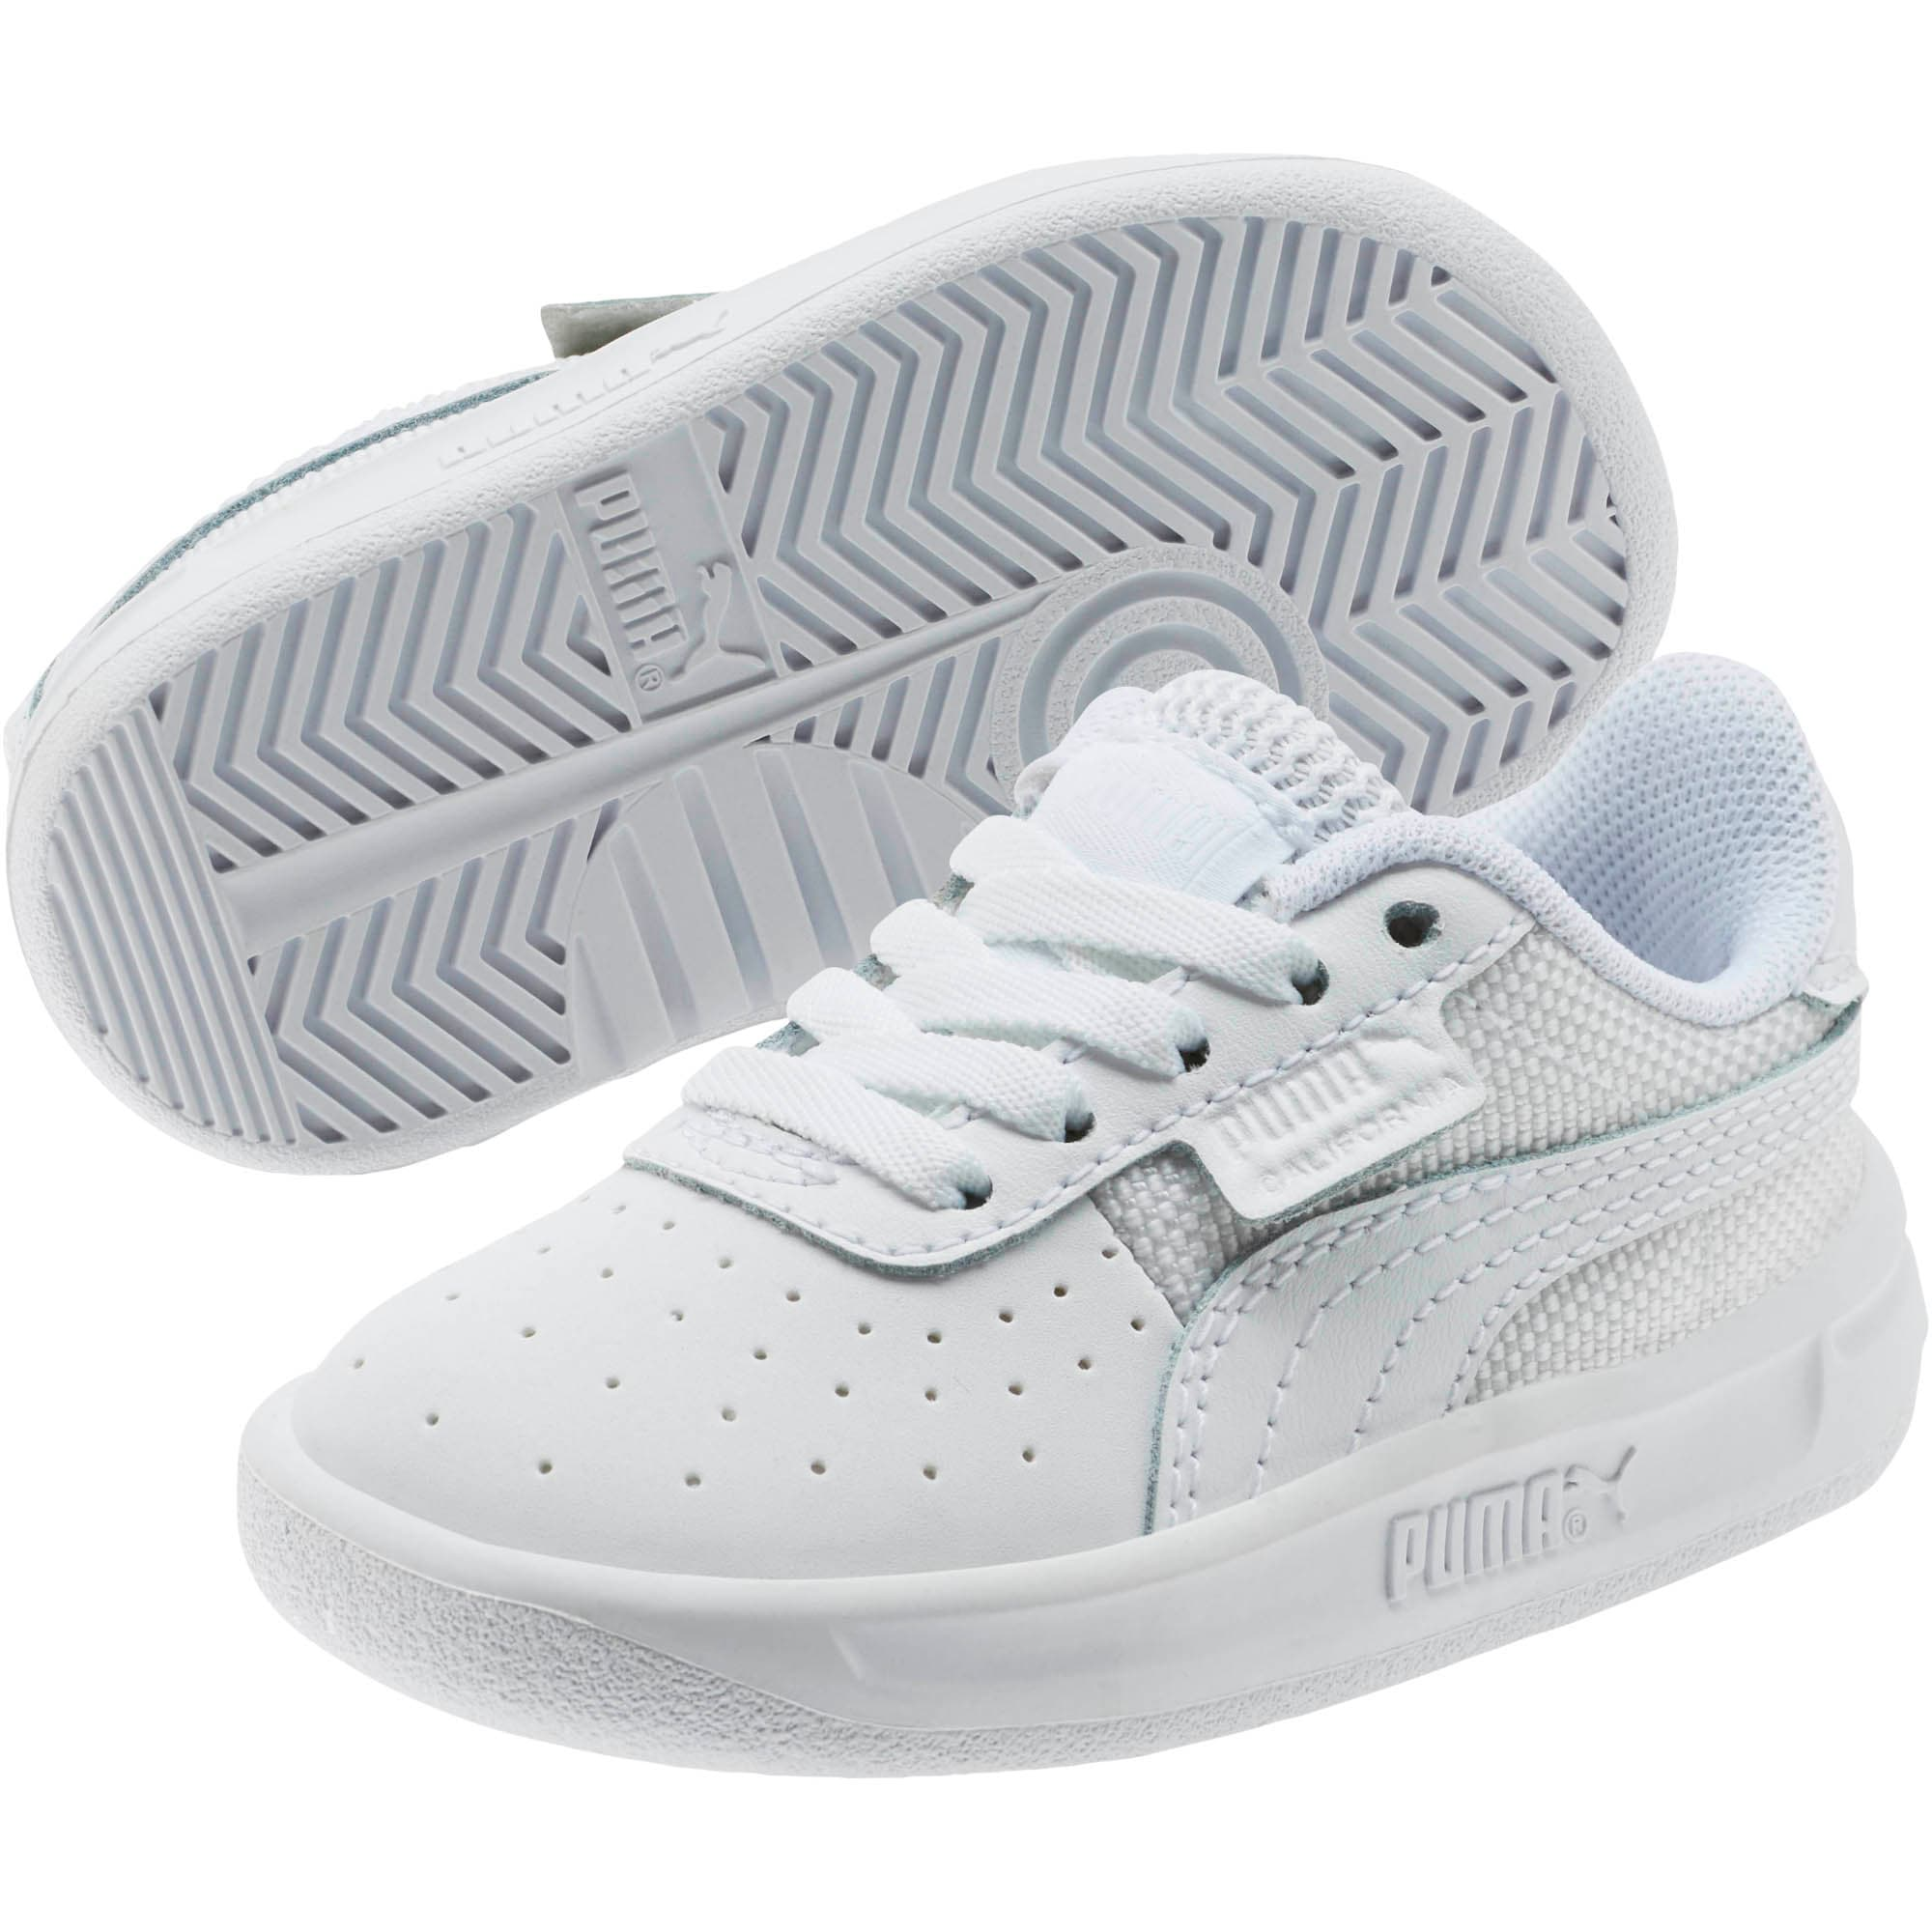 Thumbnail 2 of California Toddler Shoes, P White-P White-Puma White, medium